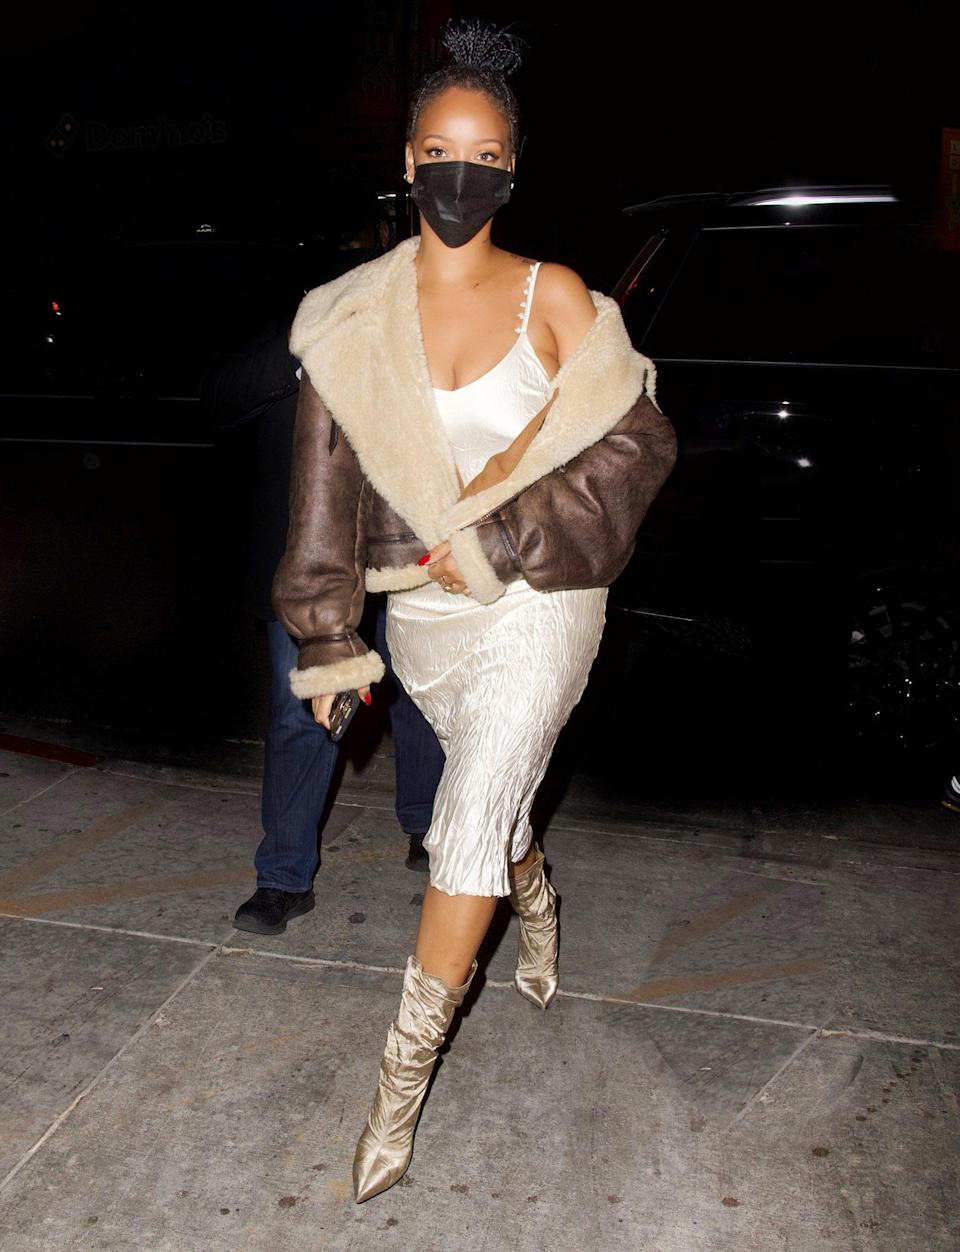 <p>Rihanna looks stunning in a pearlescent satin dress as she makes her way to dinner with friends on Tuesday night in L.A.</p>